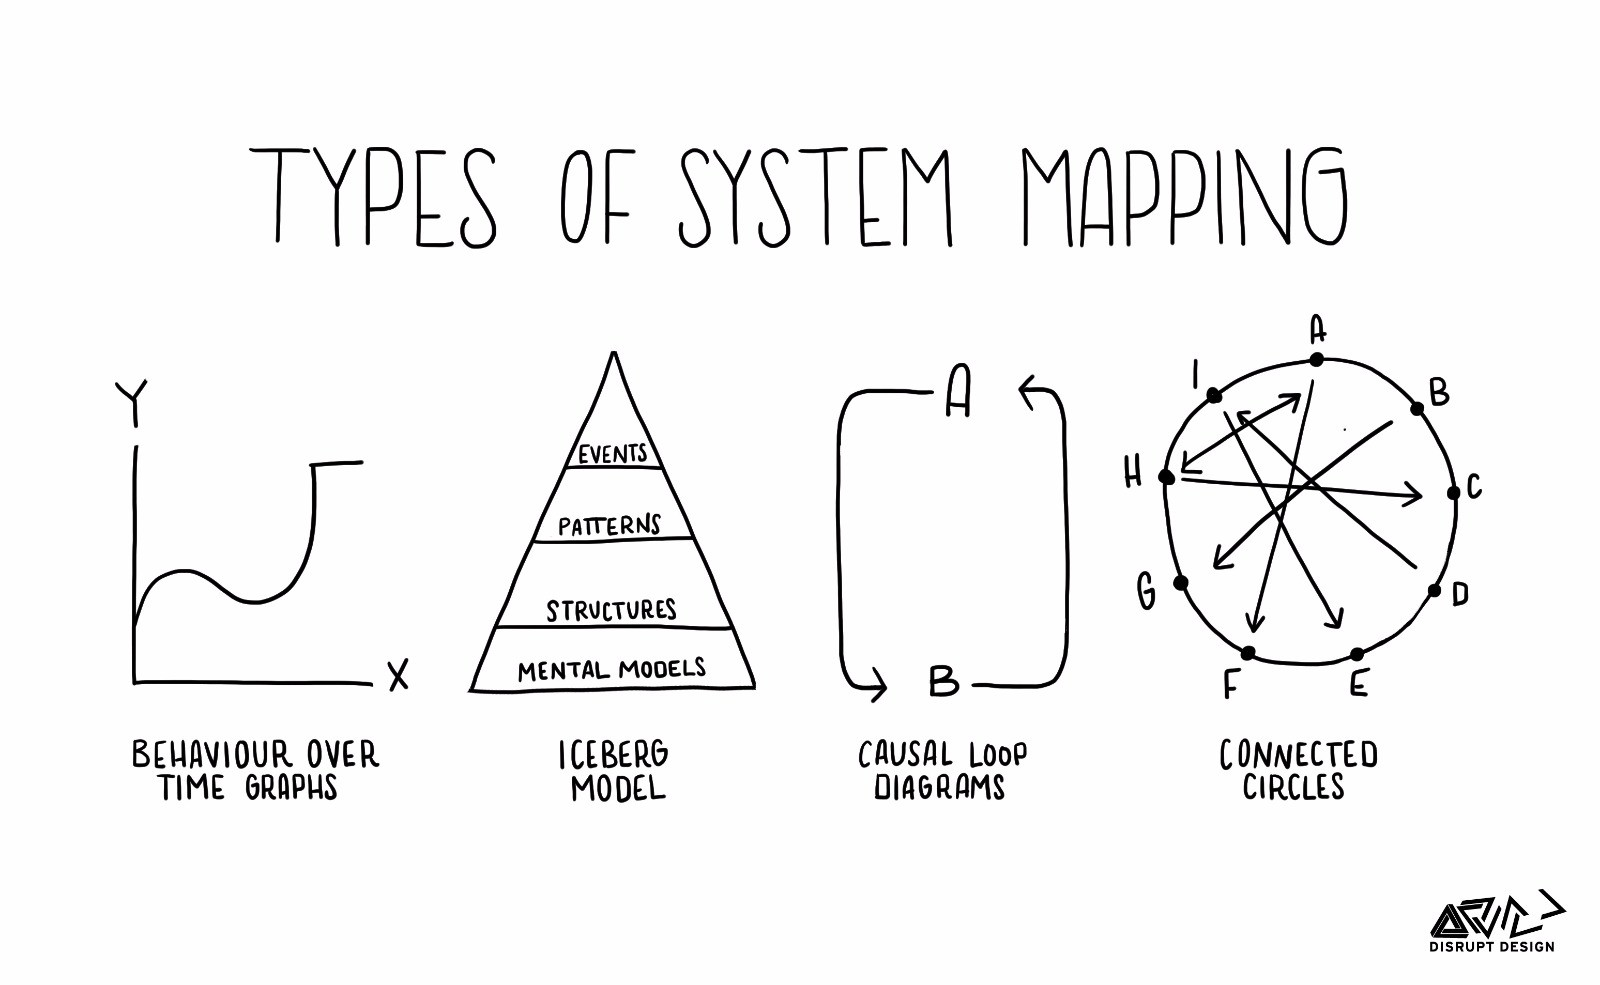 Body Systems Concept Map Key